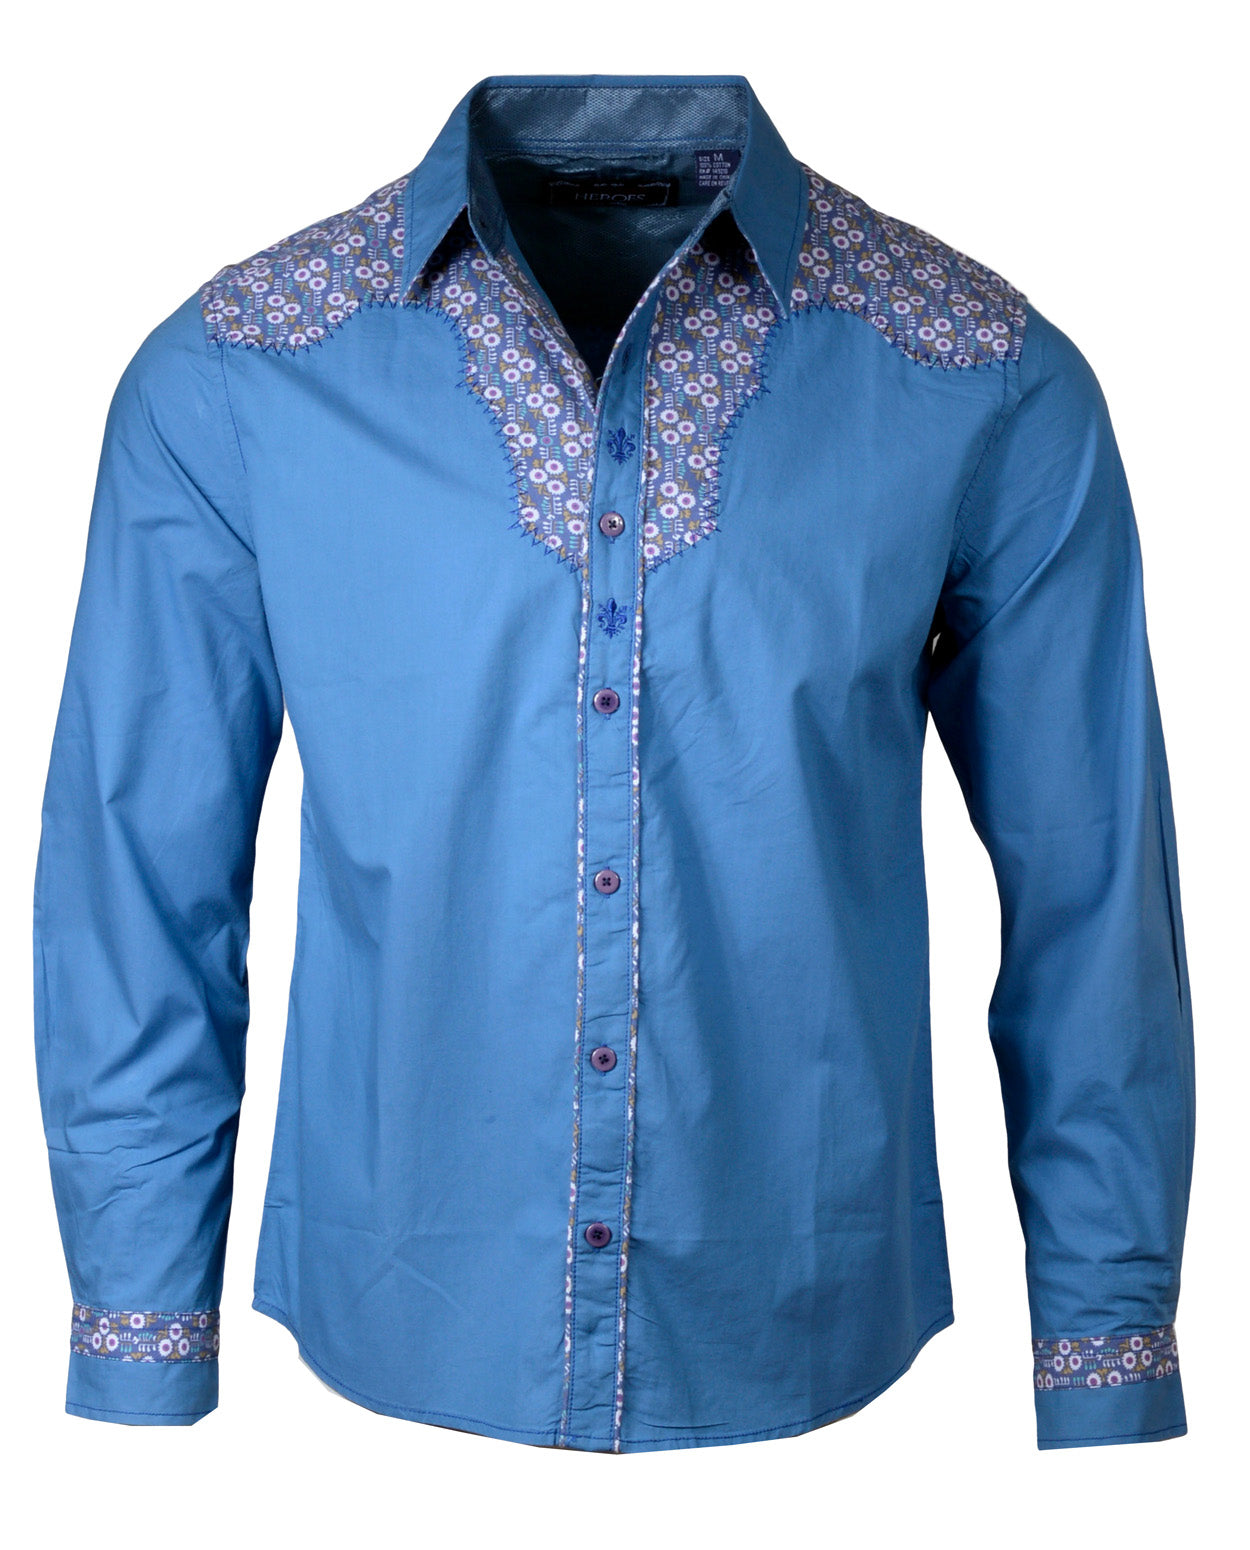 Men's Western Button Up Shirt - Western Blue Ain't Your Color by Rock Roll n Soul